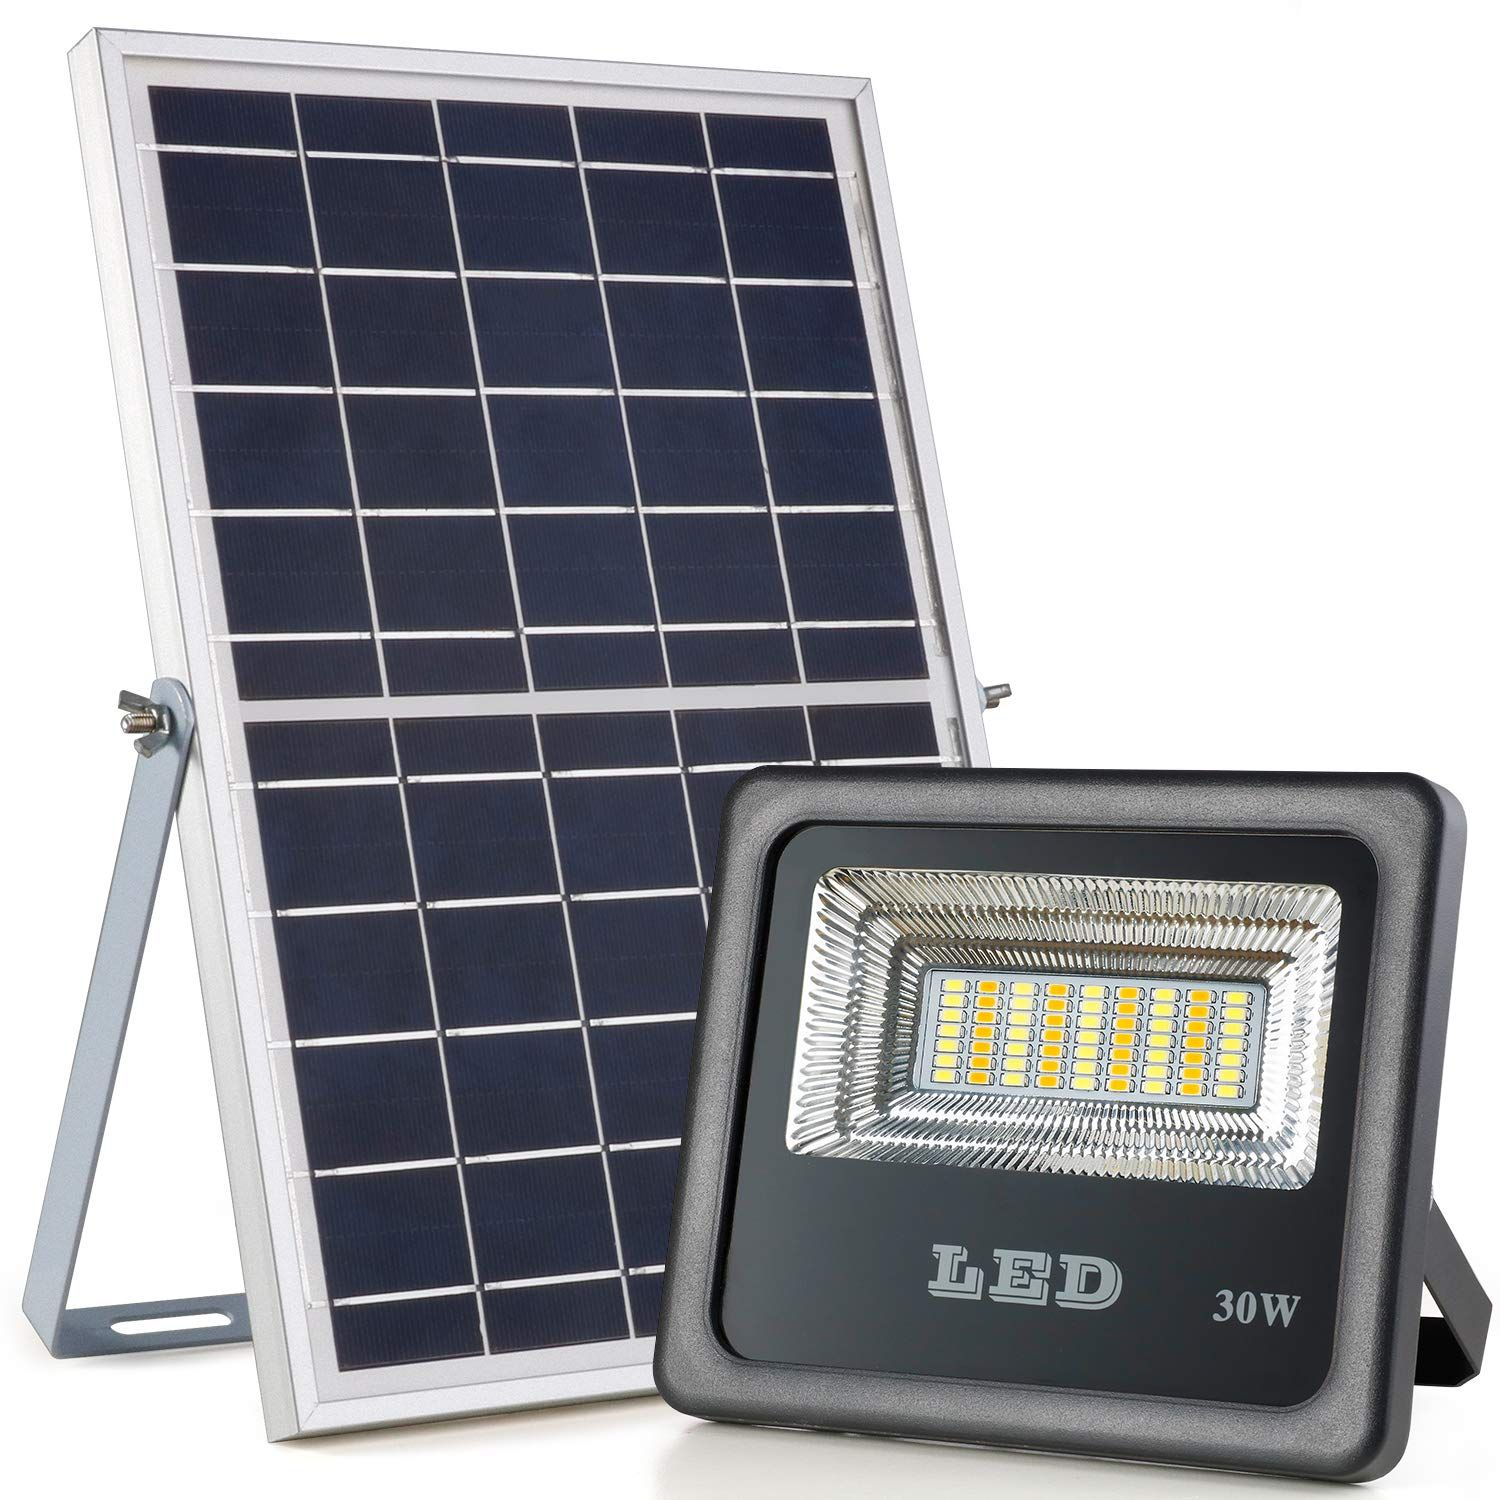 Awanber Solar Powered Flood Lights With Rf Remote Control 1000 Lumens Dusk To Dawn Ip66 Waterproof Solar Powered Flood Lights Flood Lights Solar Flood Lights Solar powered flood light dusk to dawn